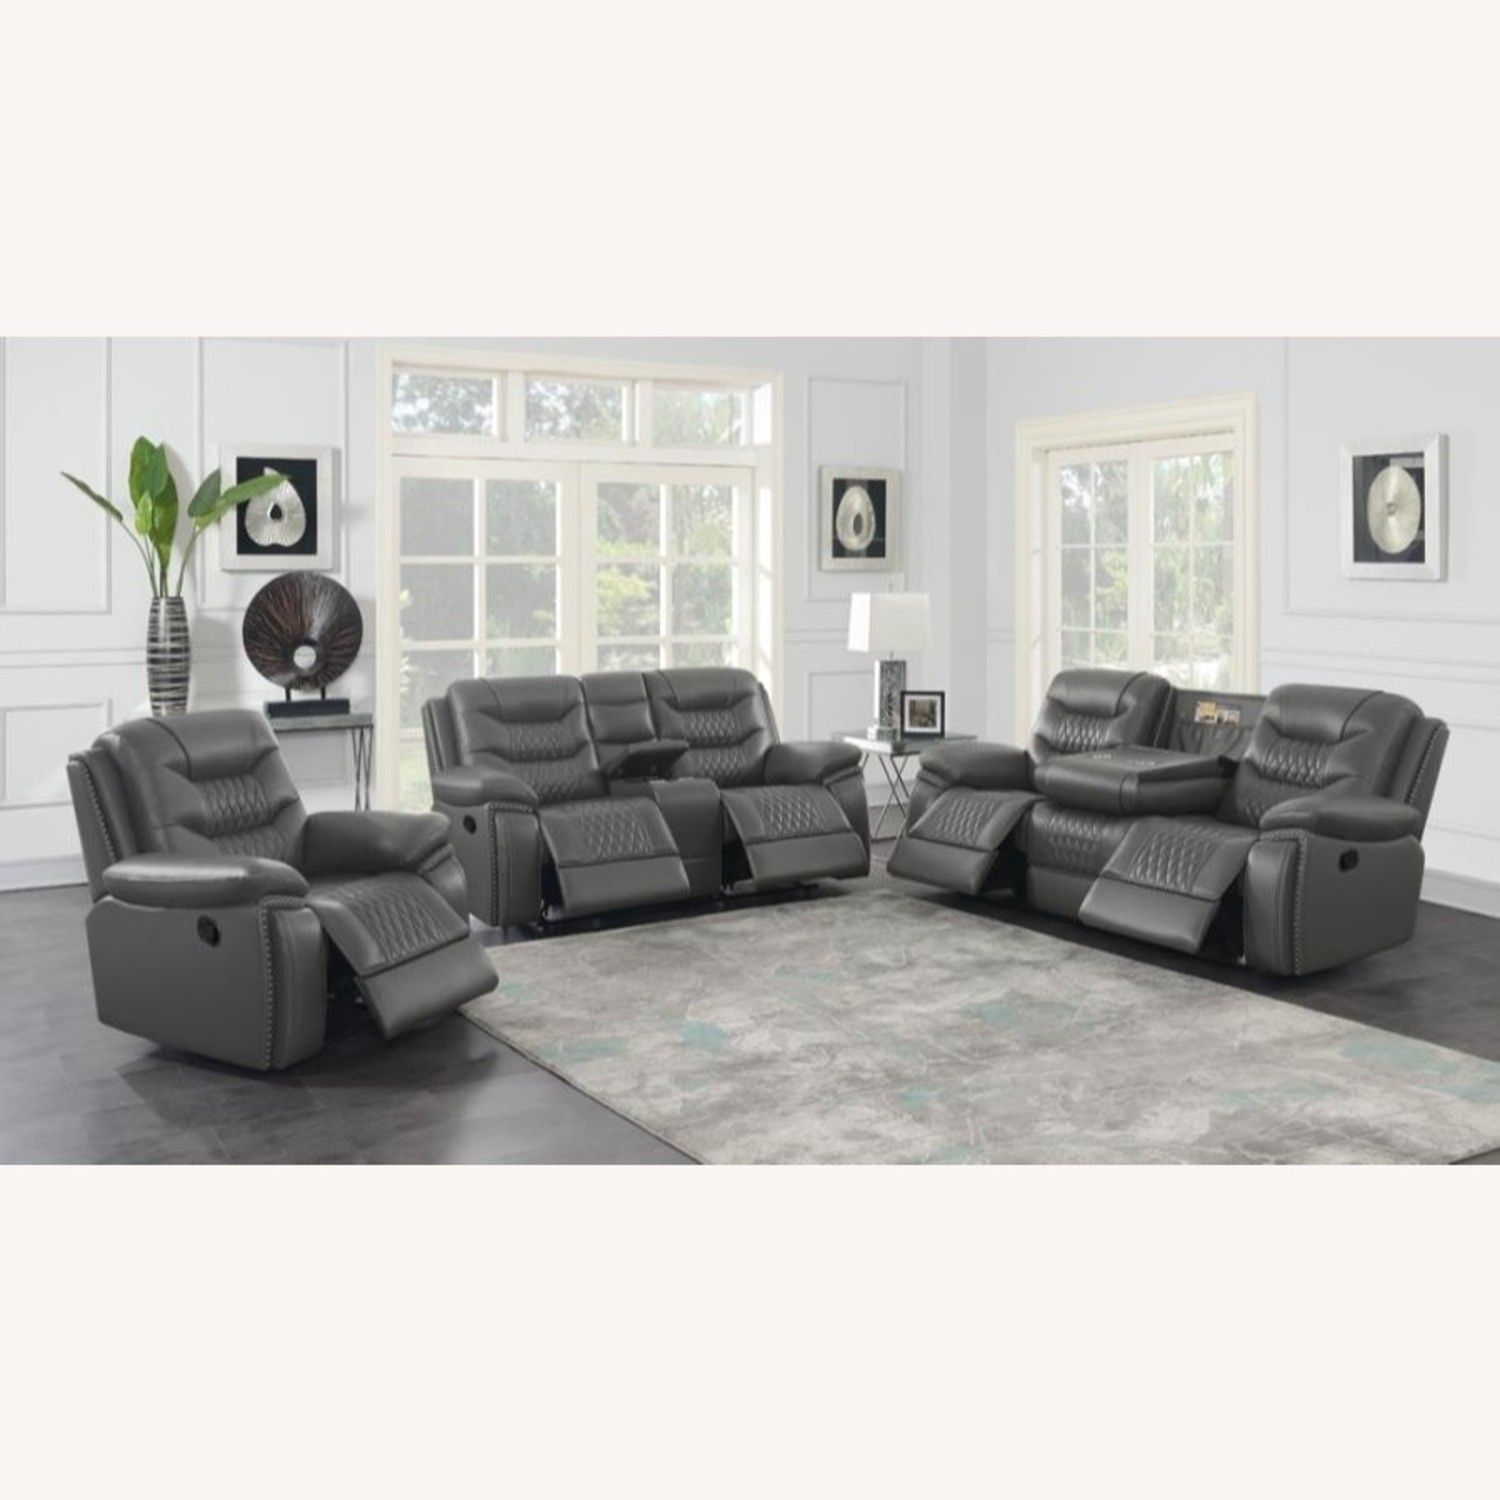 Recliner In Charcoal Performance Leatherette - image-7